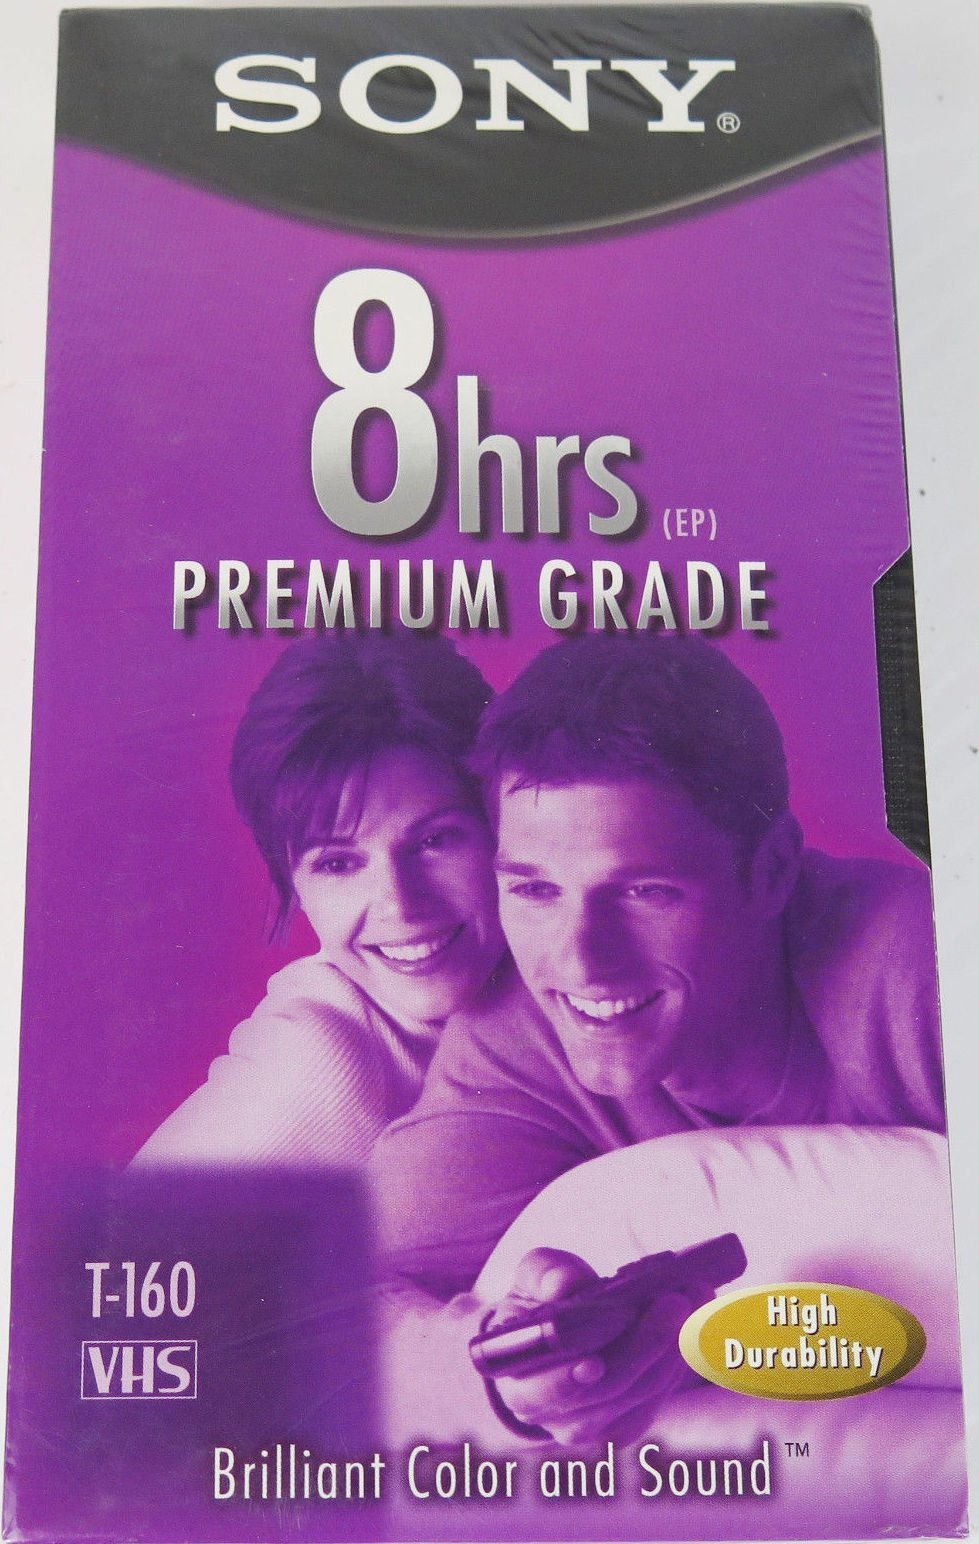 Sony T-160 Premium Grade VHS Tapes - 10 Pack by Sony (Image #1)